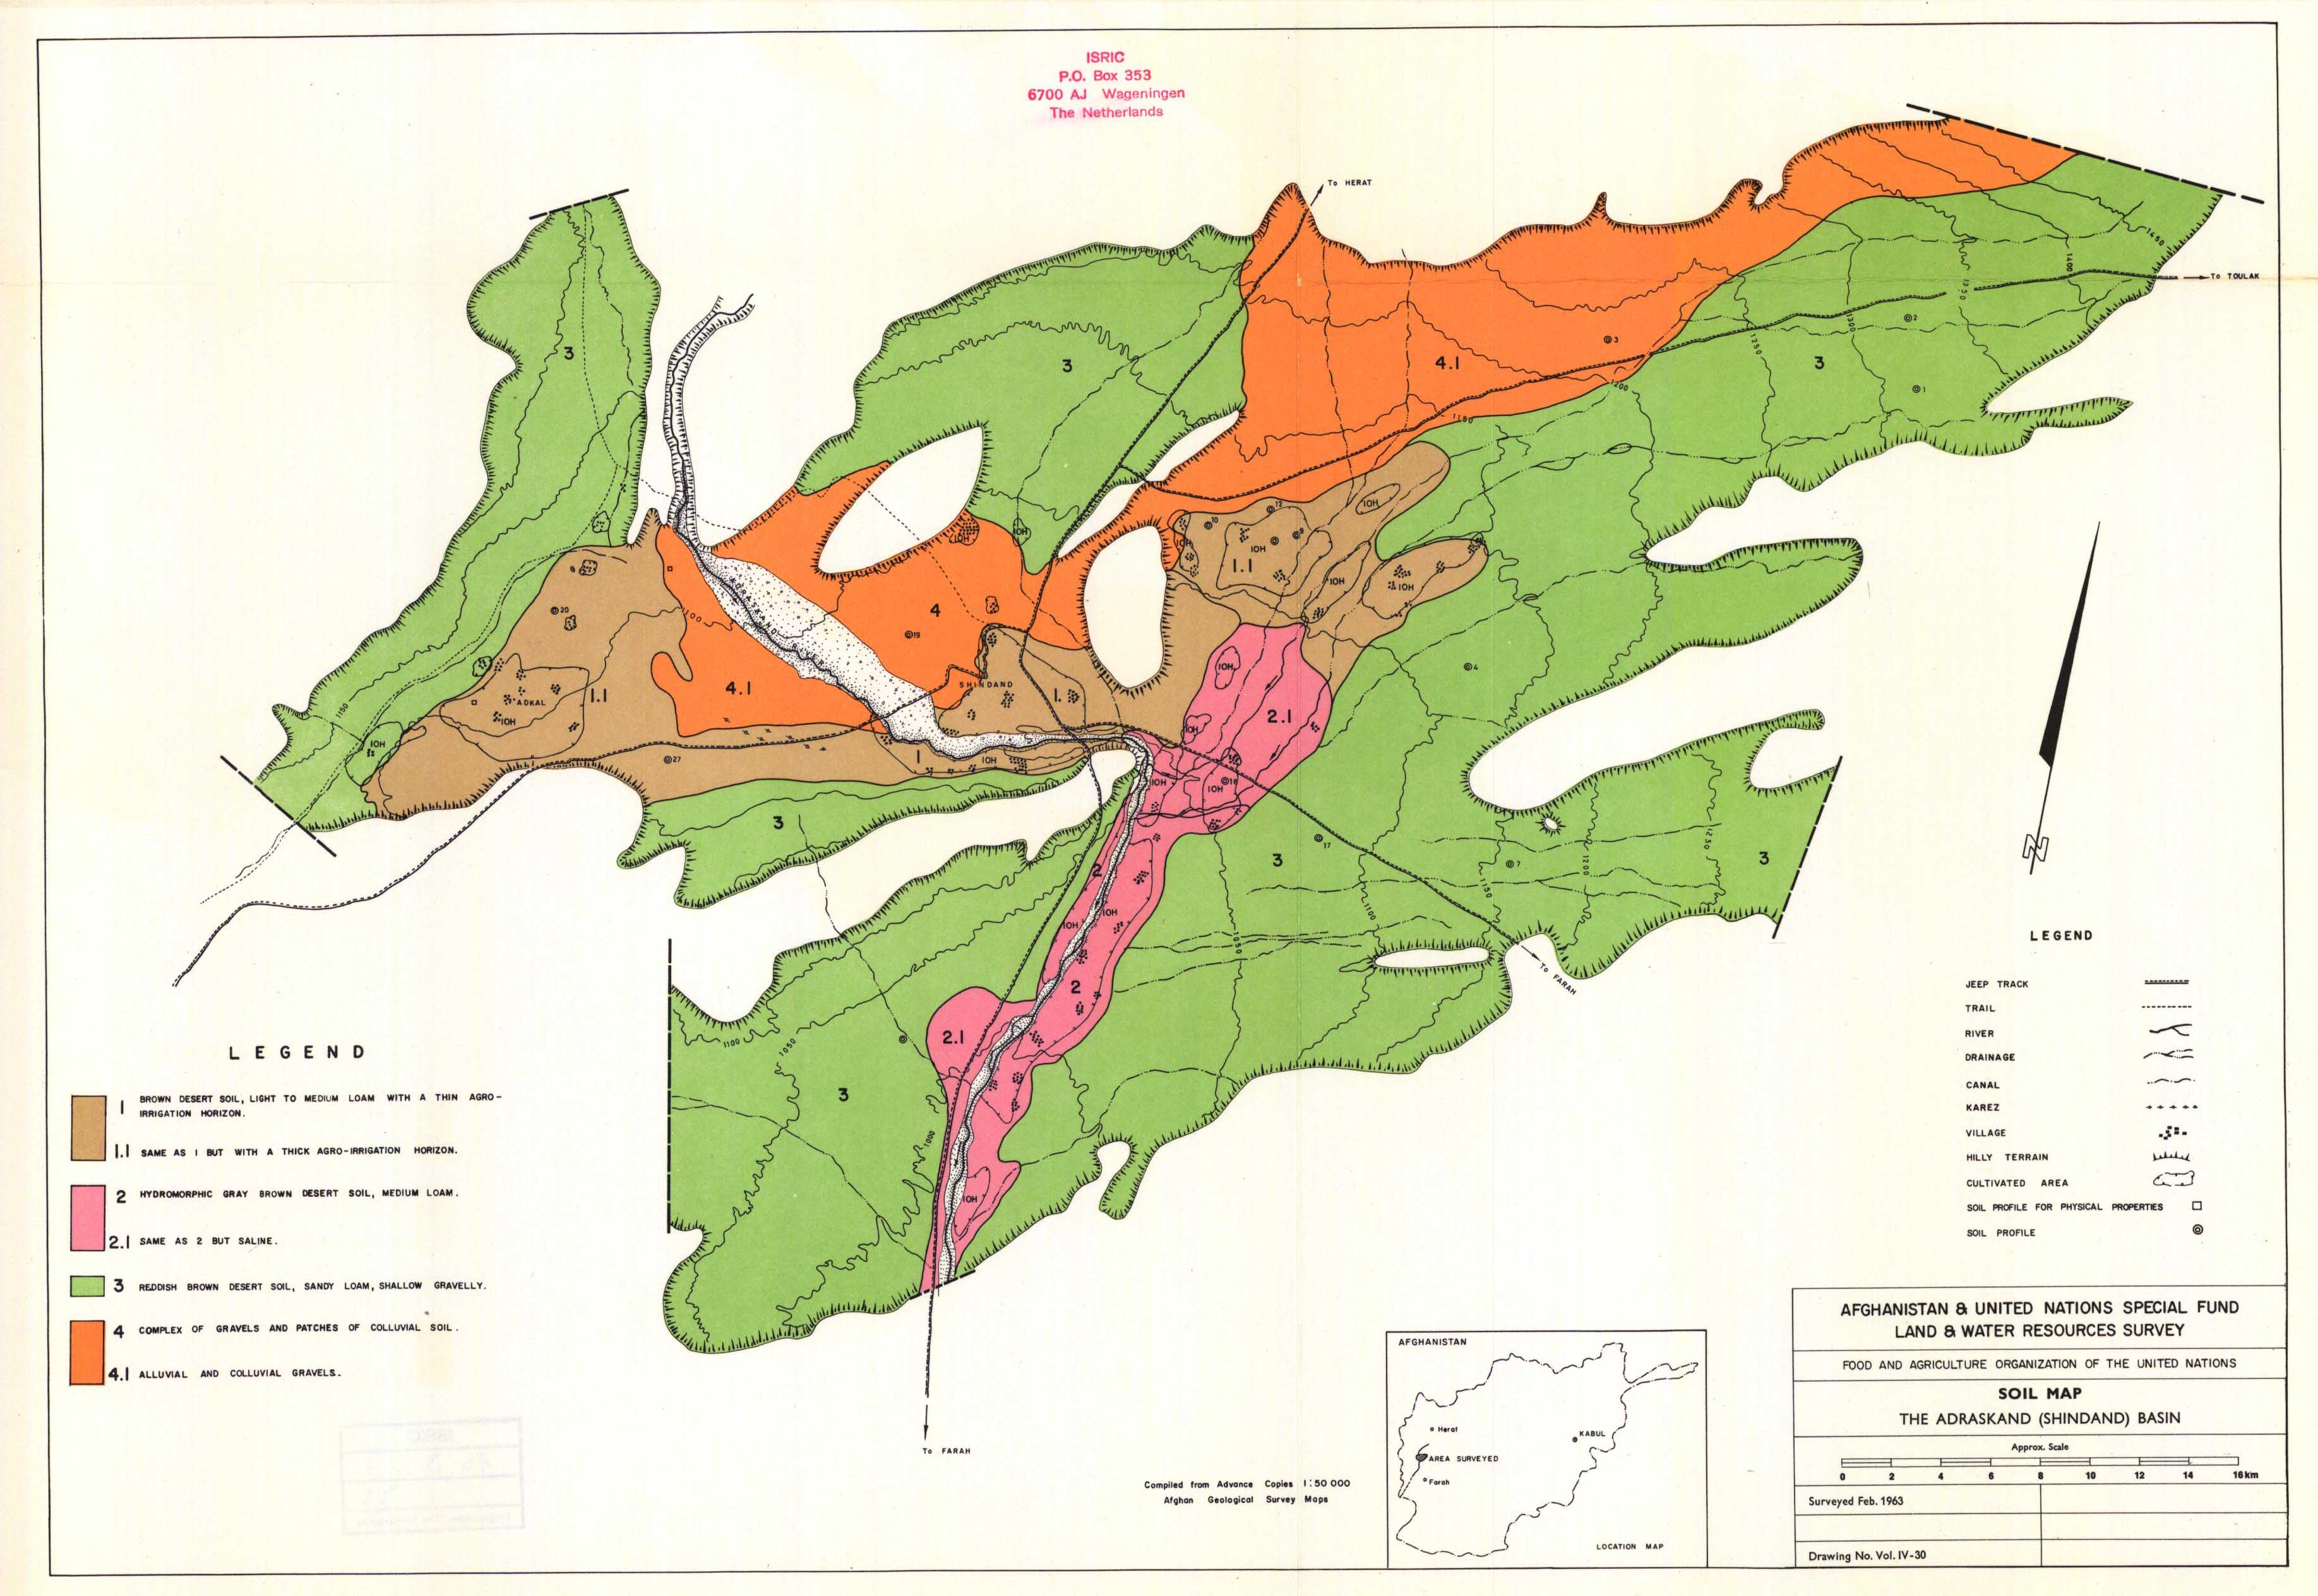 National soil maps eudasm esdac european commission soil map the adraskand shindand basin vol iv 30 gumiabroncs Choice Image